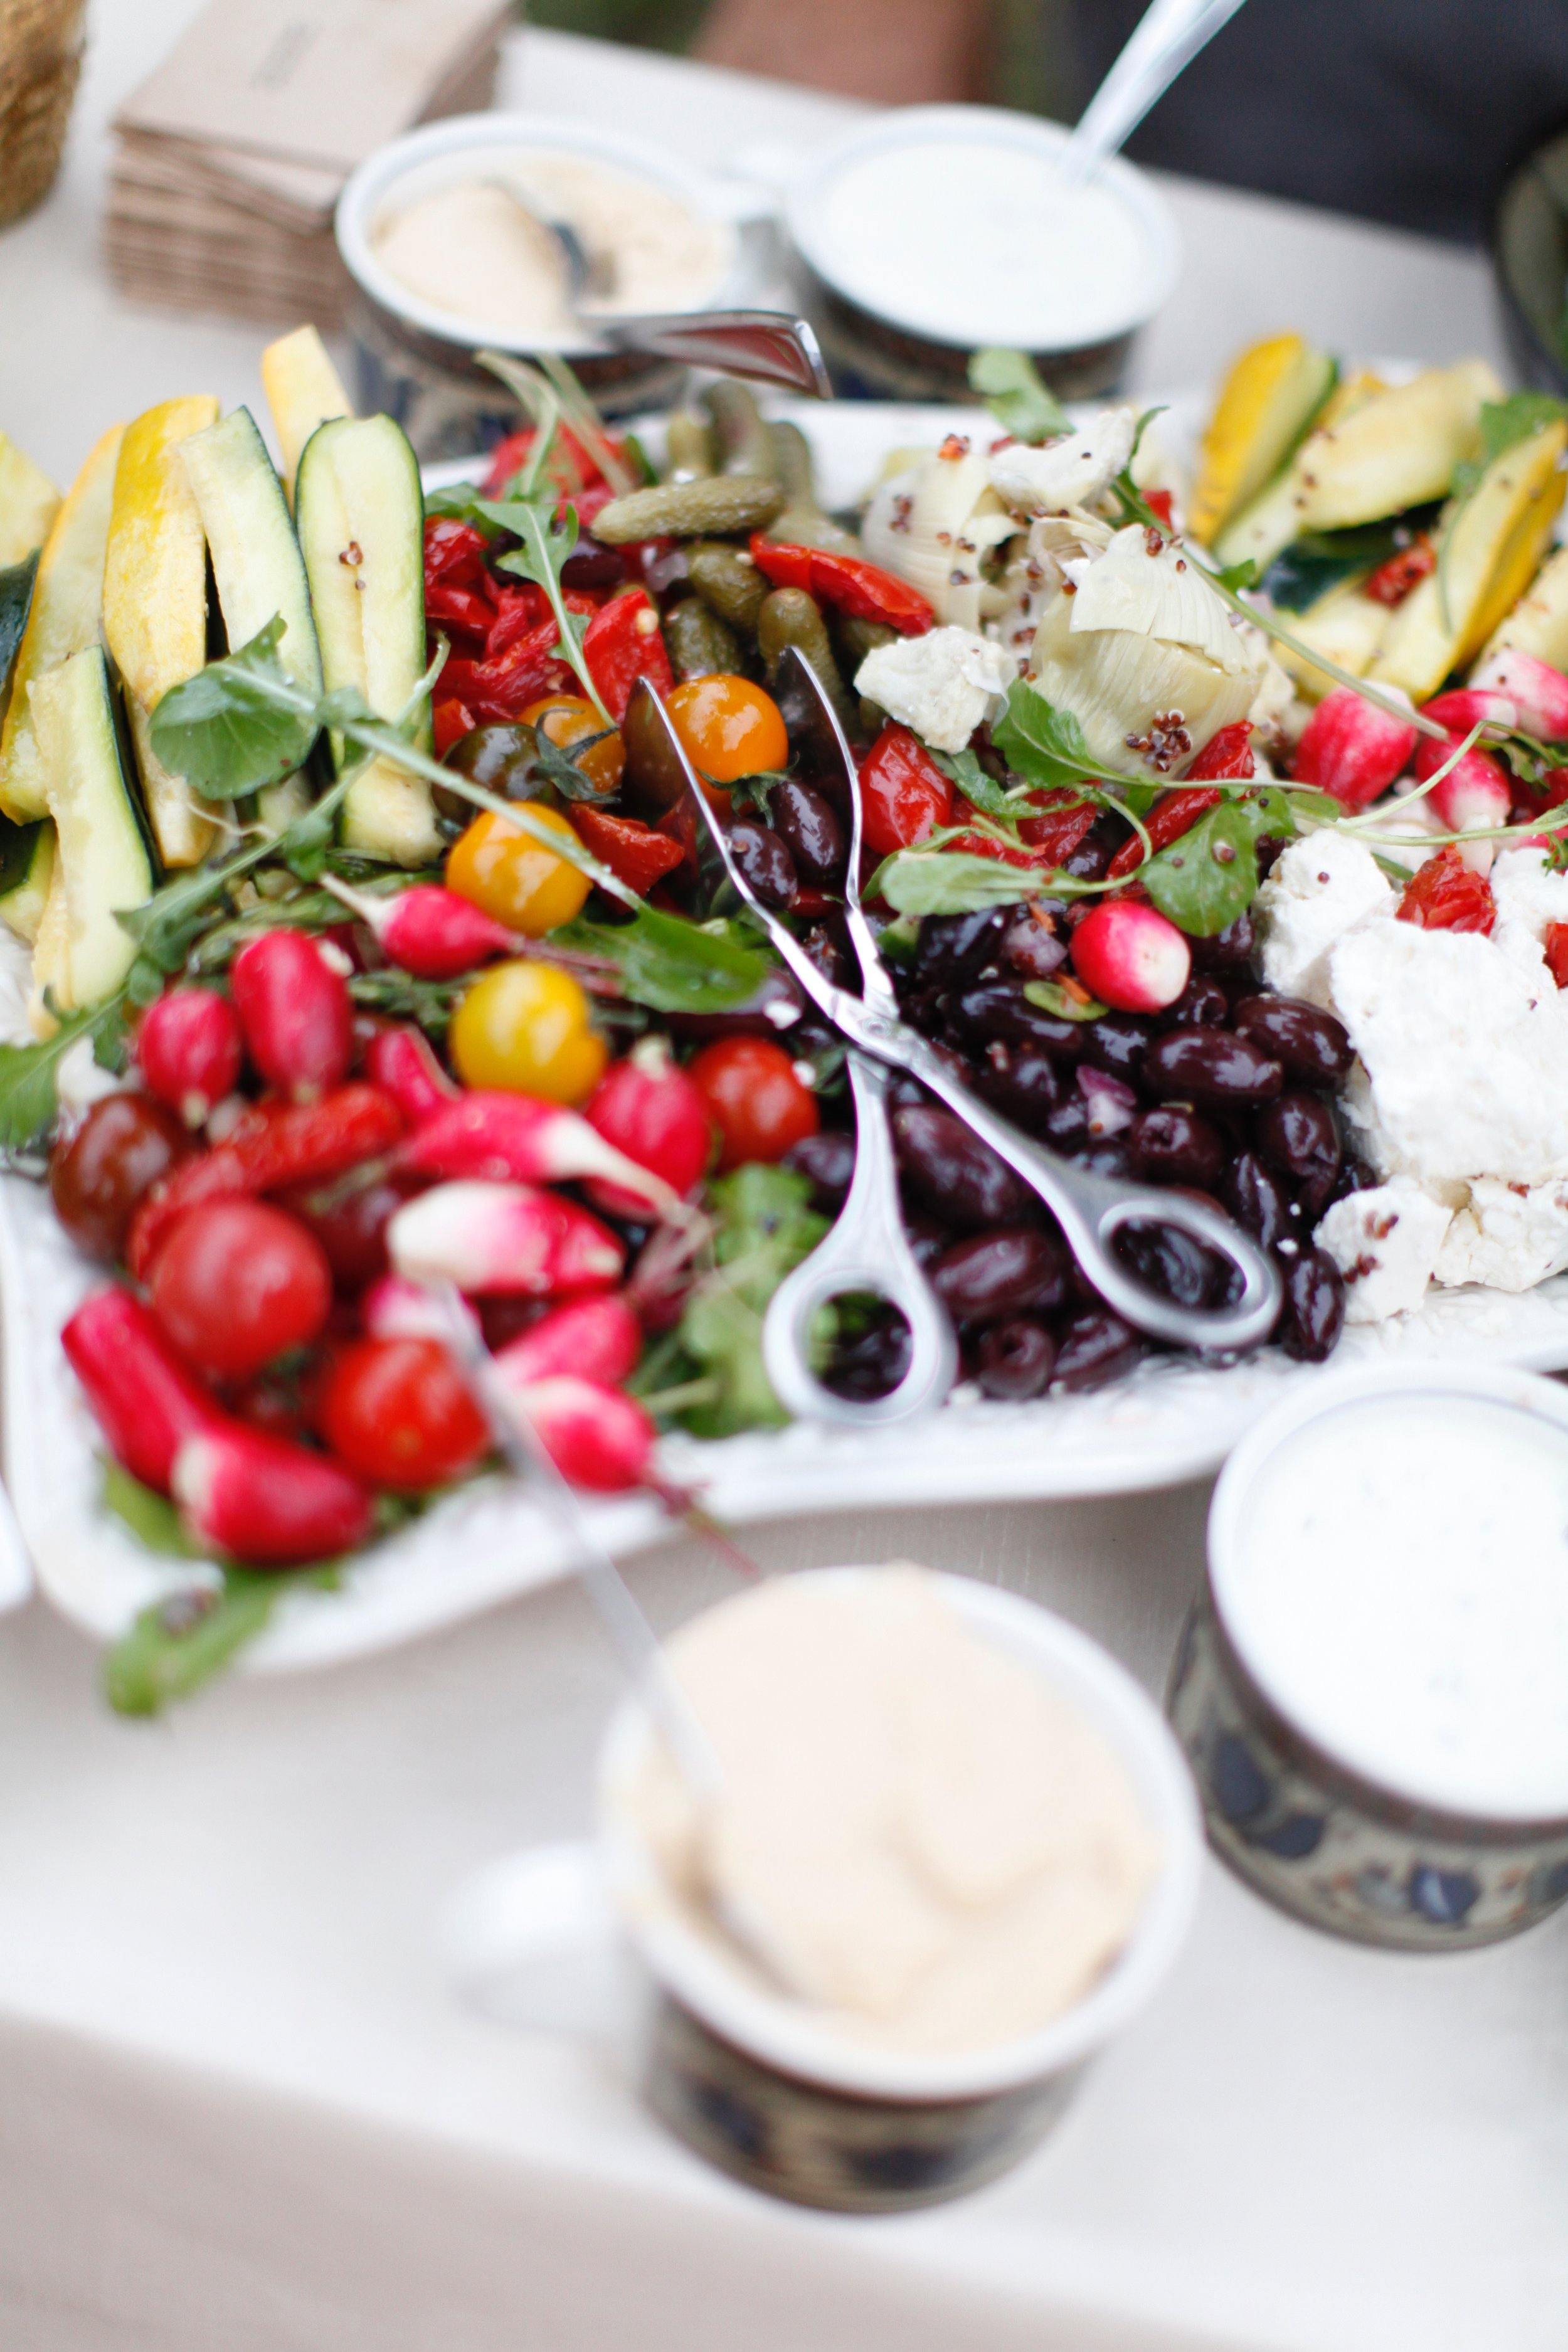 E.A.T Marketplace of Temecula donated their famous Mediterranean Party Platter for out guest.